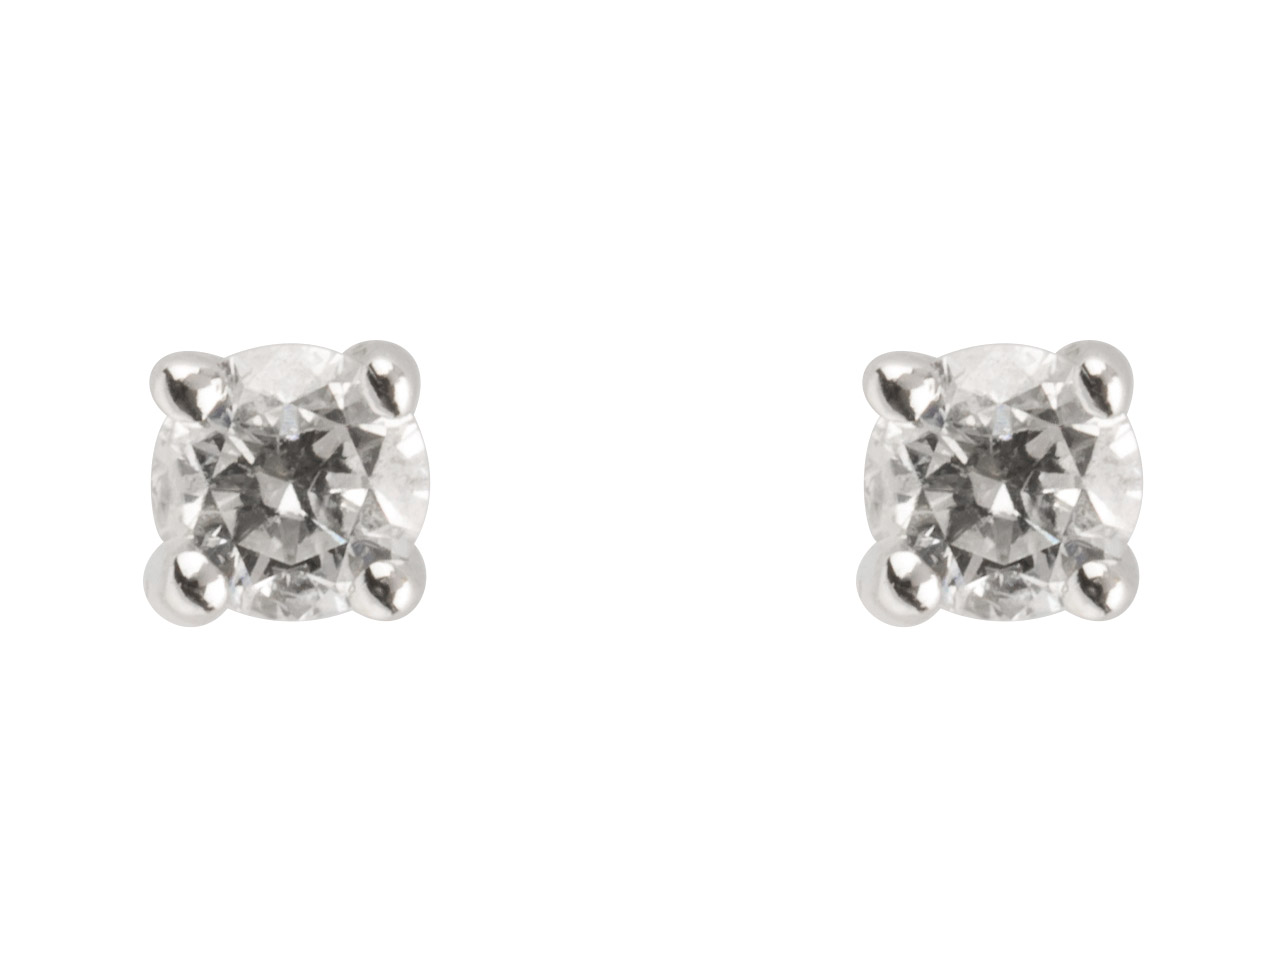 9ct White Diamond Stud Earring,    0.10cts, Claw Set